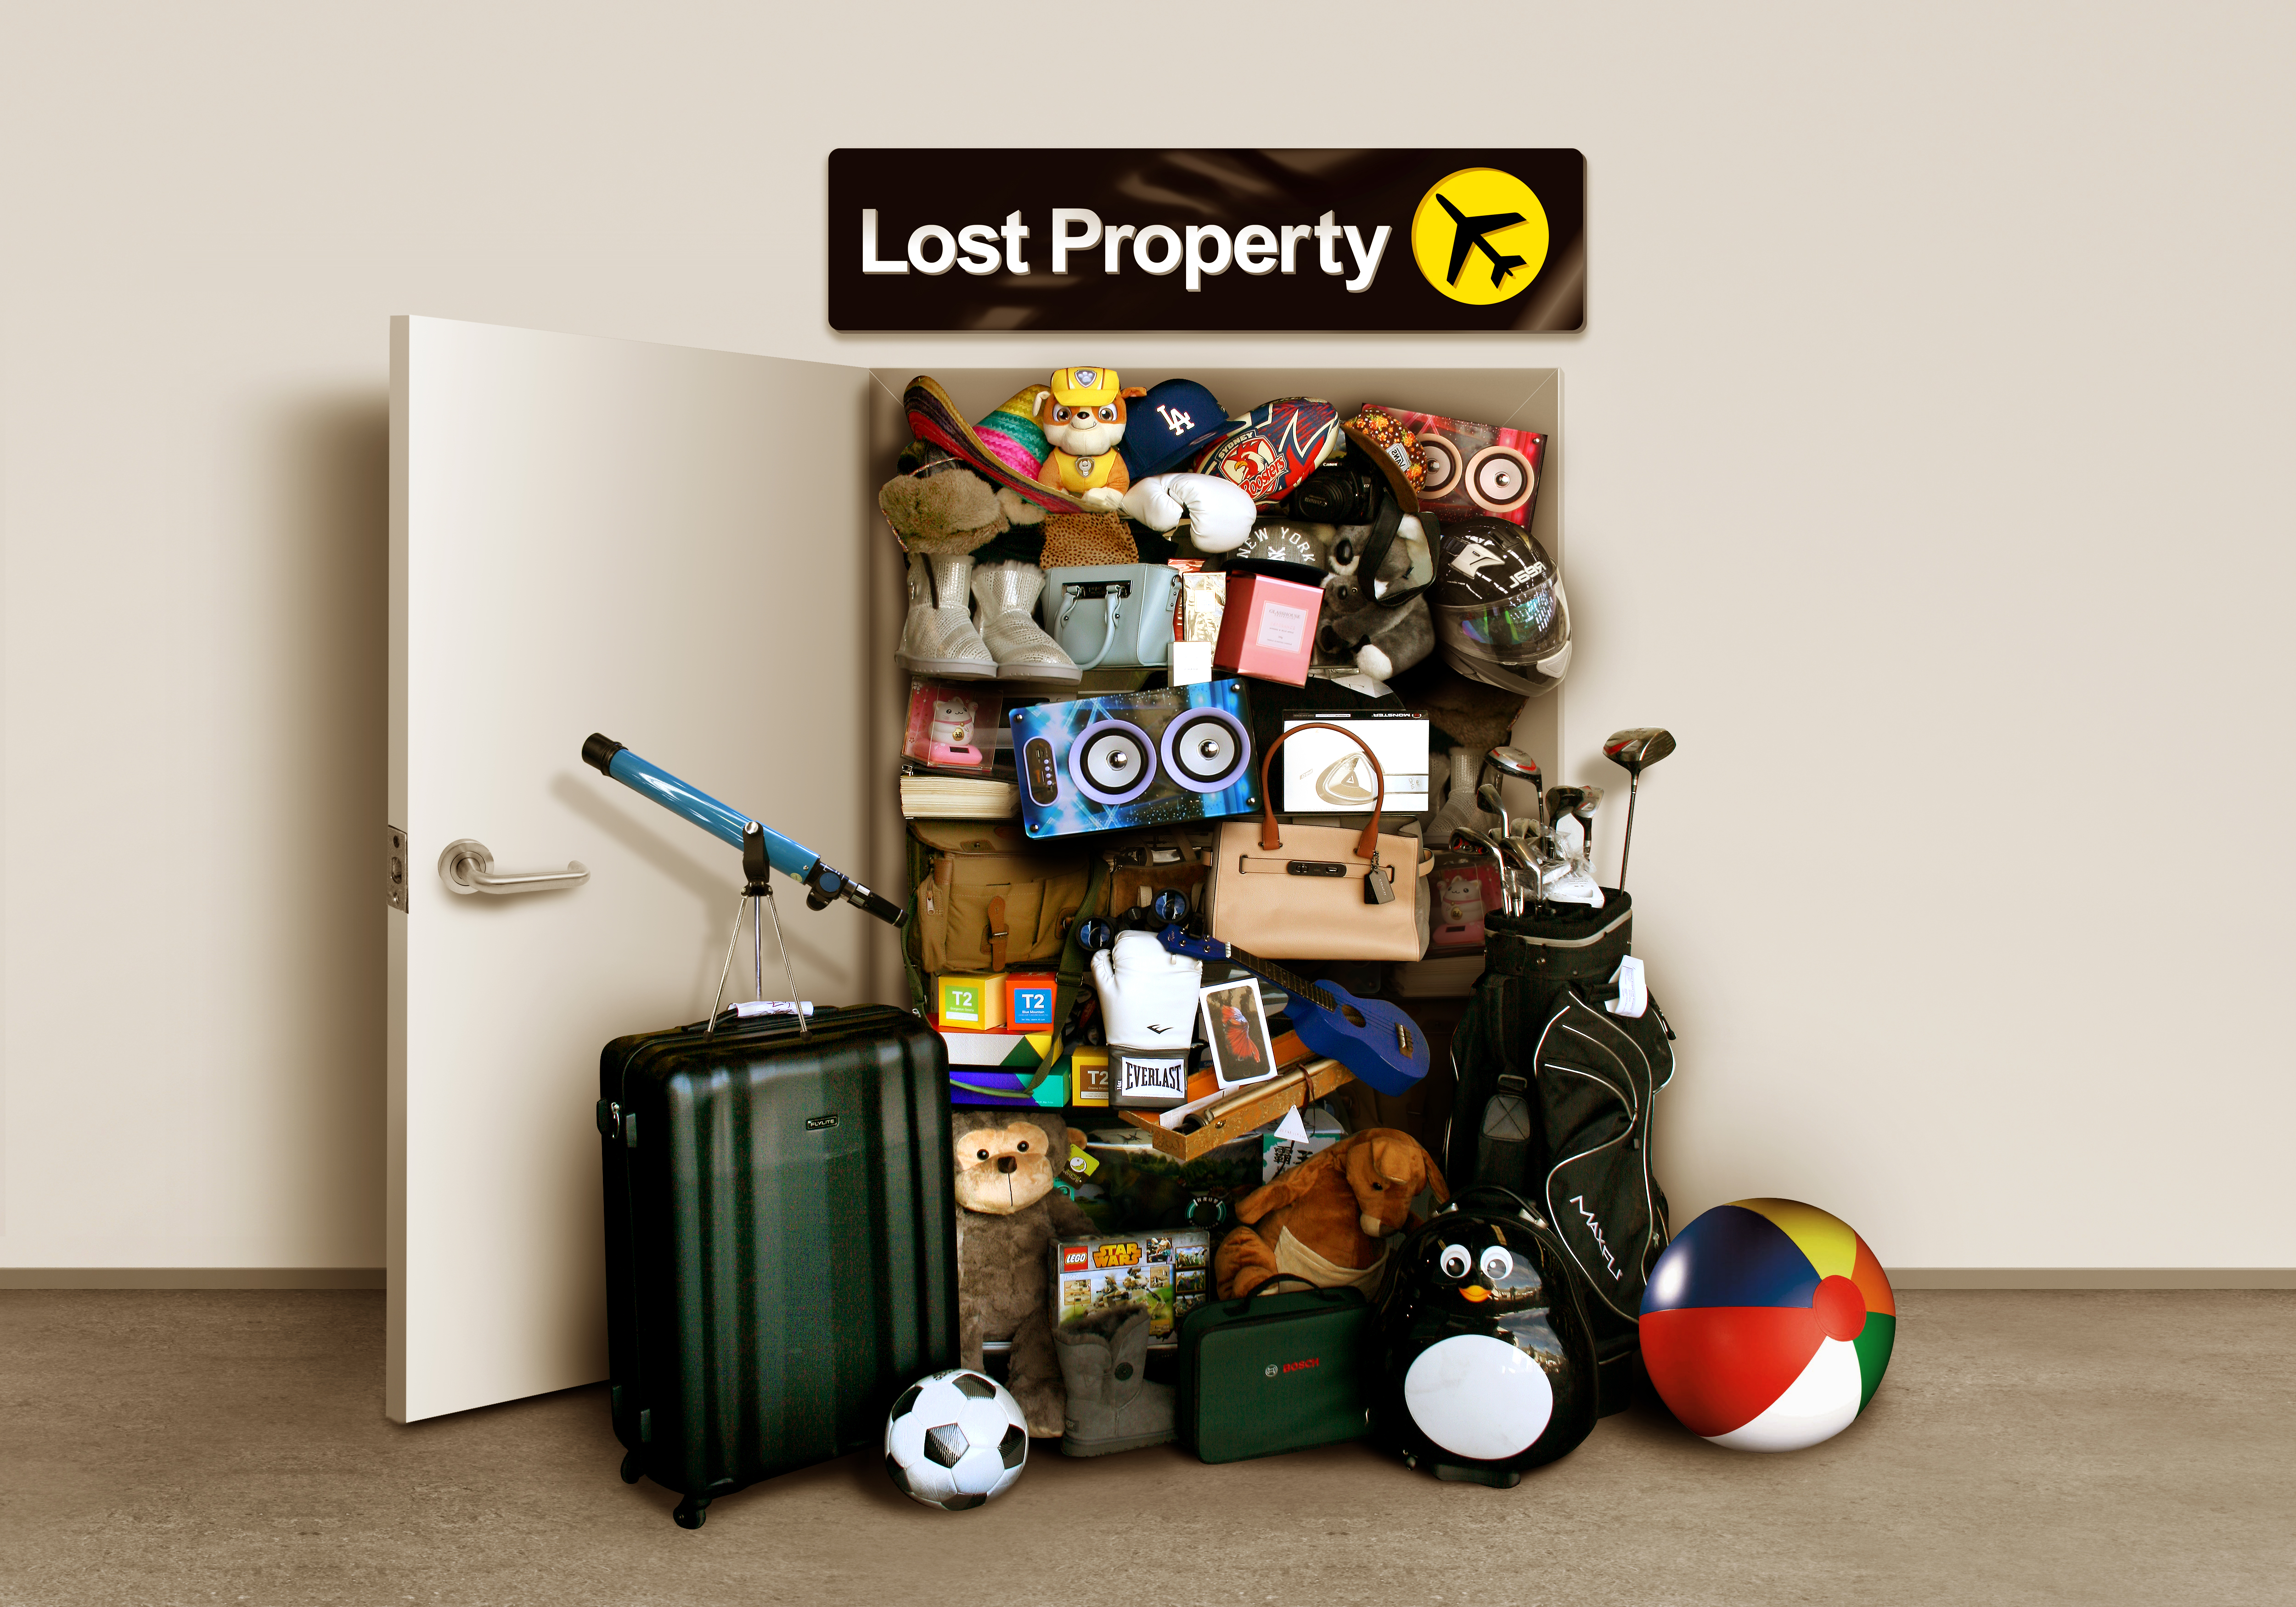 Lost property auction graphic